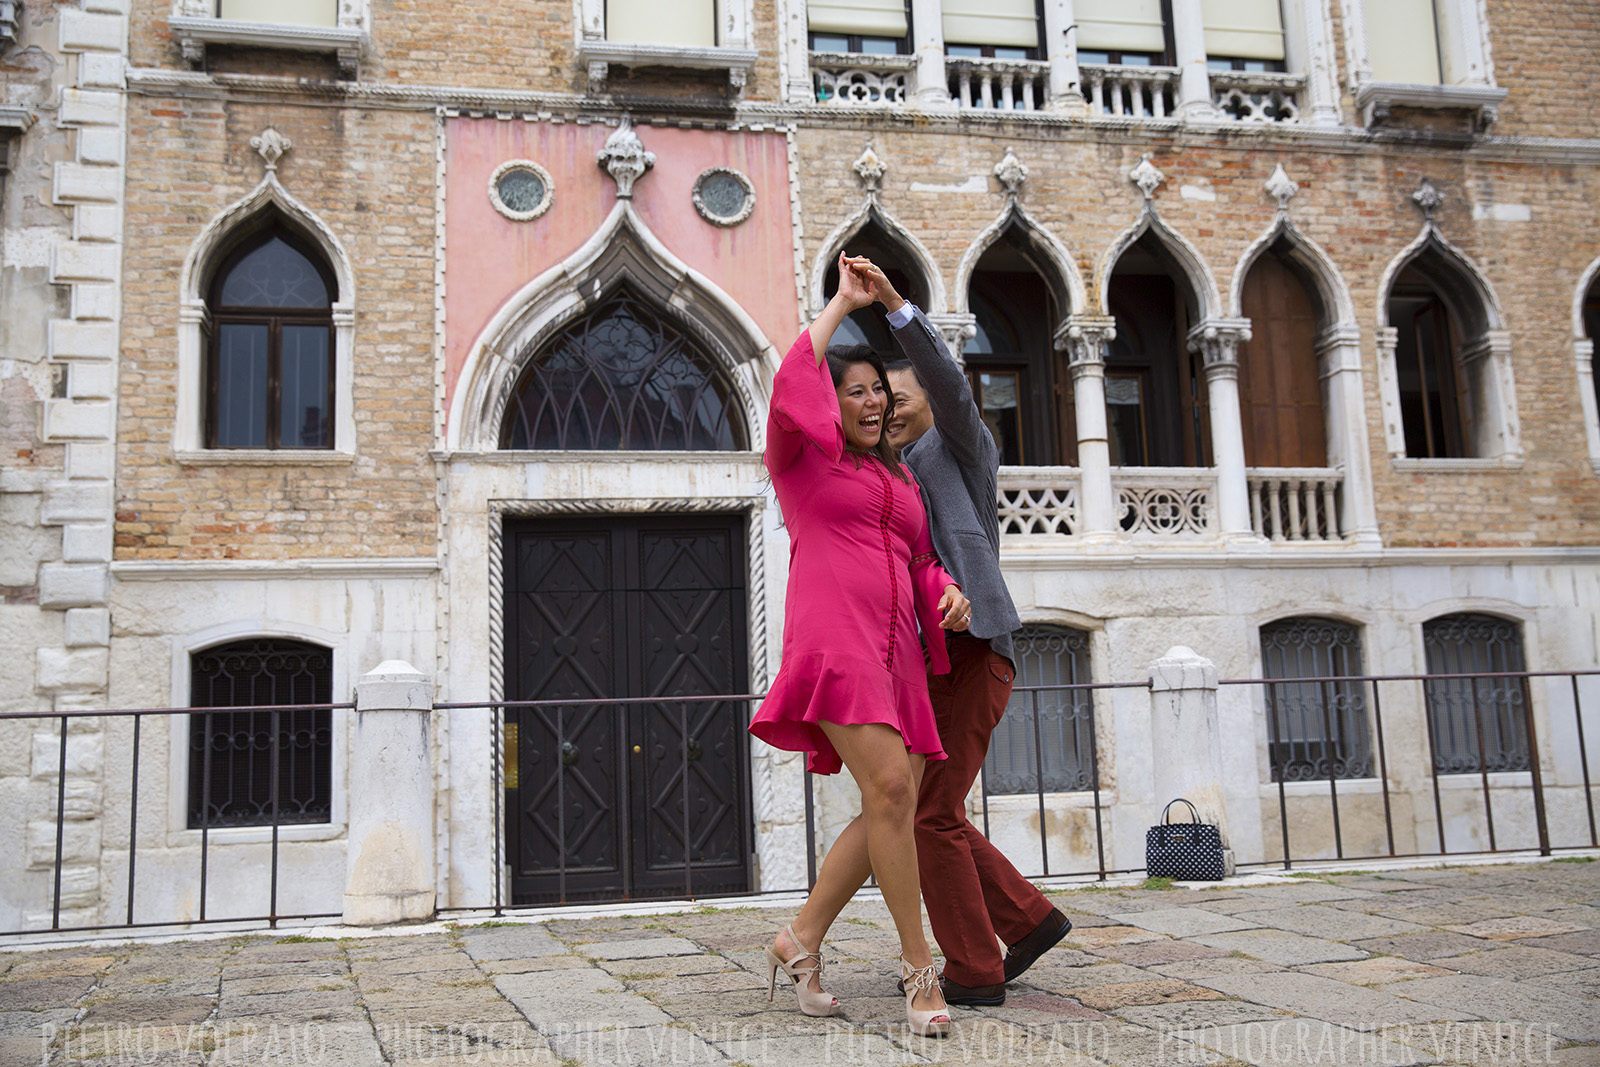 Venice couple photo shoot and walking tour with professional photographer ~ Vacation photographer in Venice